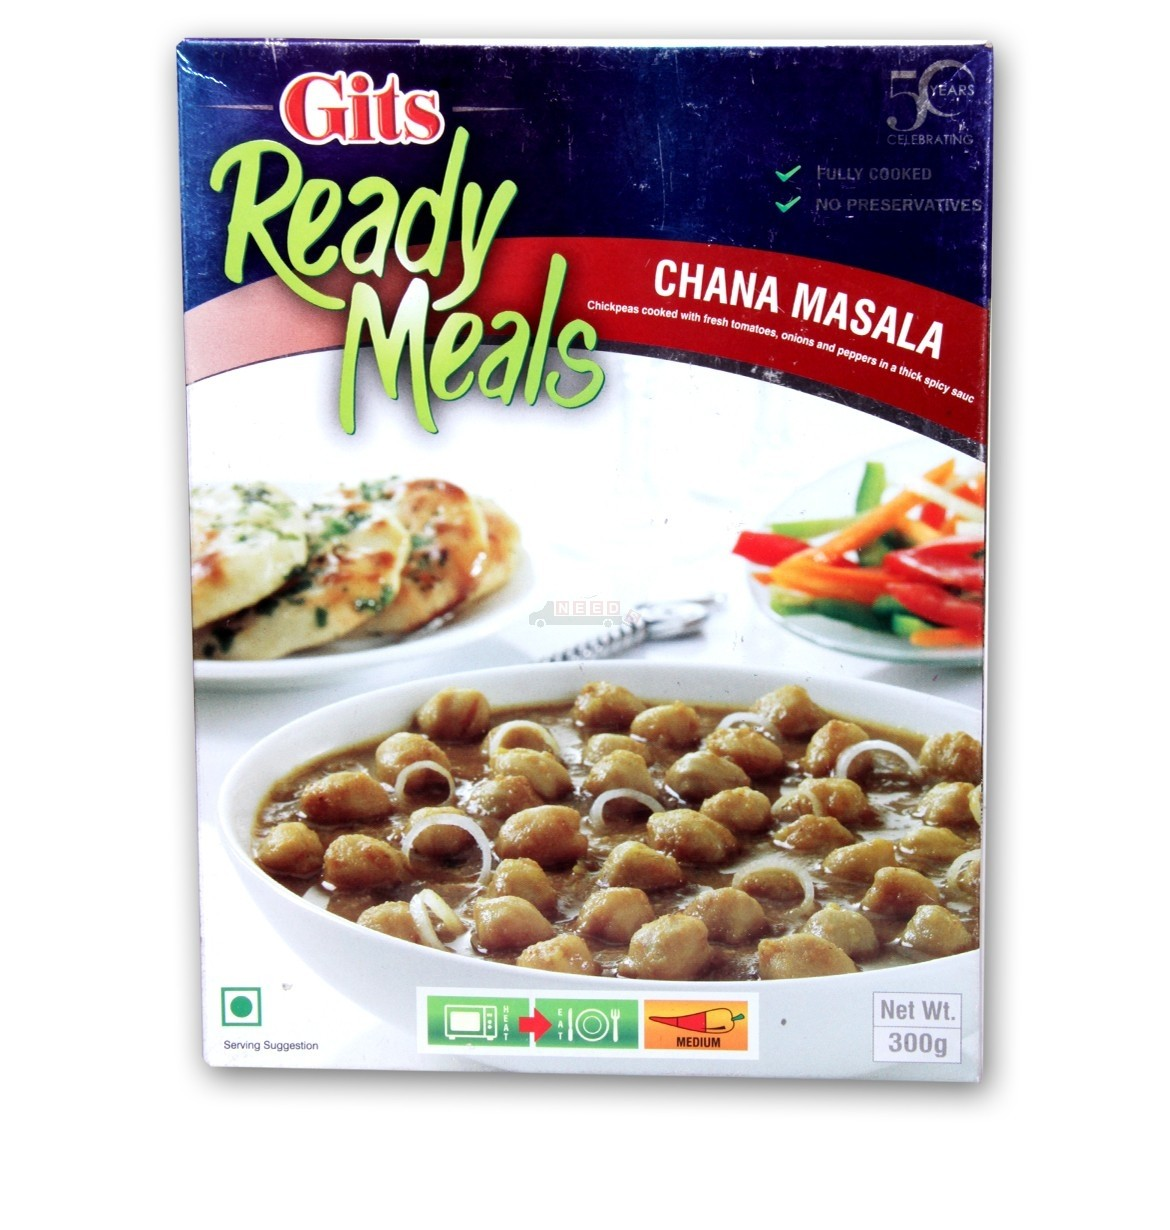 Gits Ready Meals Image